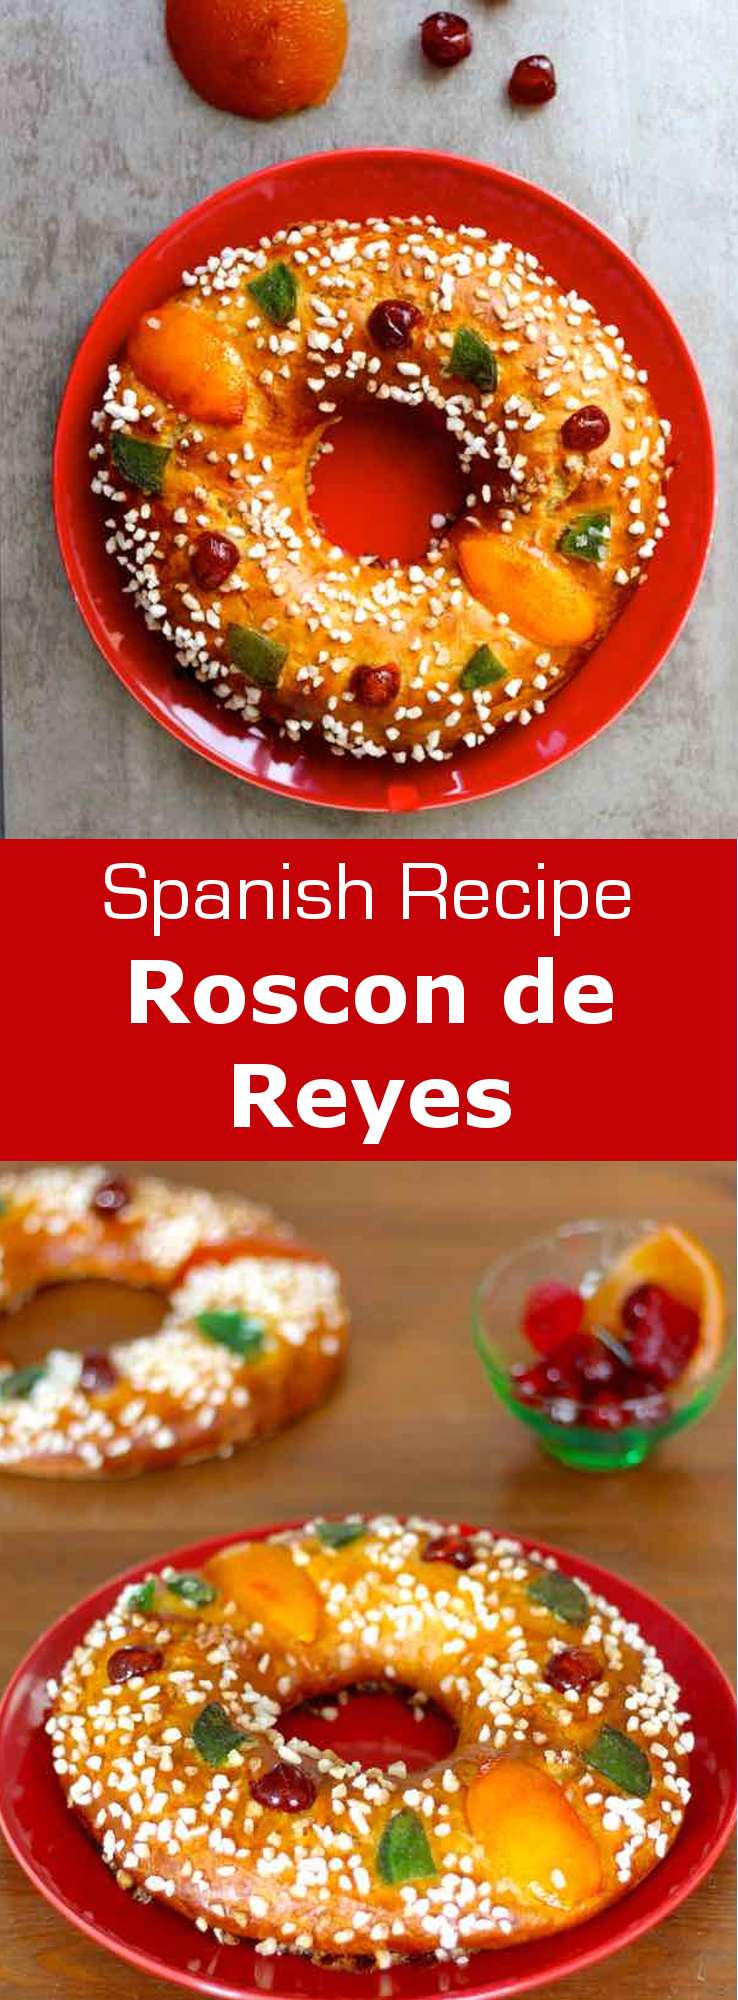 Roscon de reyes also known as the crown of kings is a Spanish brioche with Mediterranean flavors prepared in honor of the feast of Epiphany. #vegetarian #dessert #Spanish #Spain #Epiphany #KingCake #SpanishCuisine #WorldCuisine #196flavors